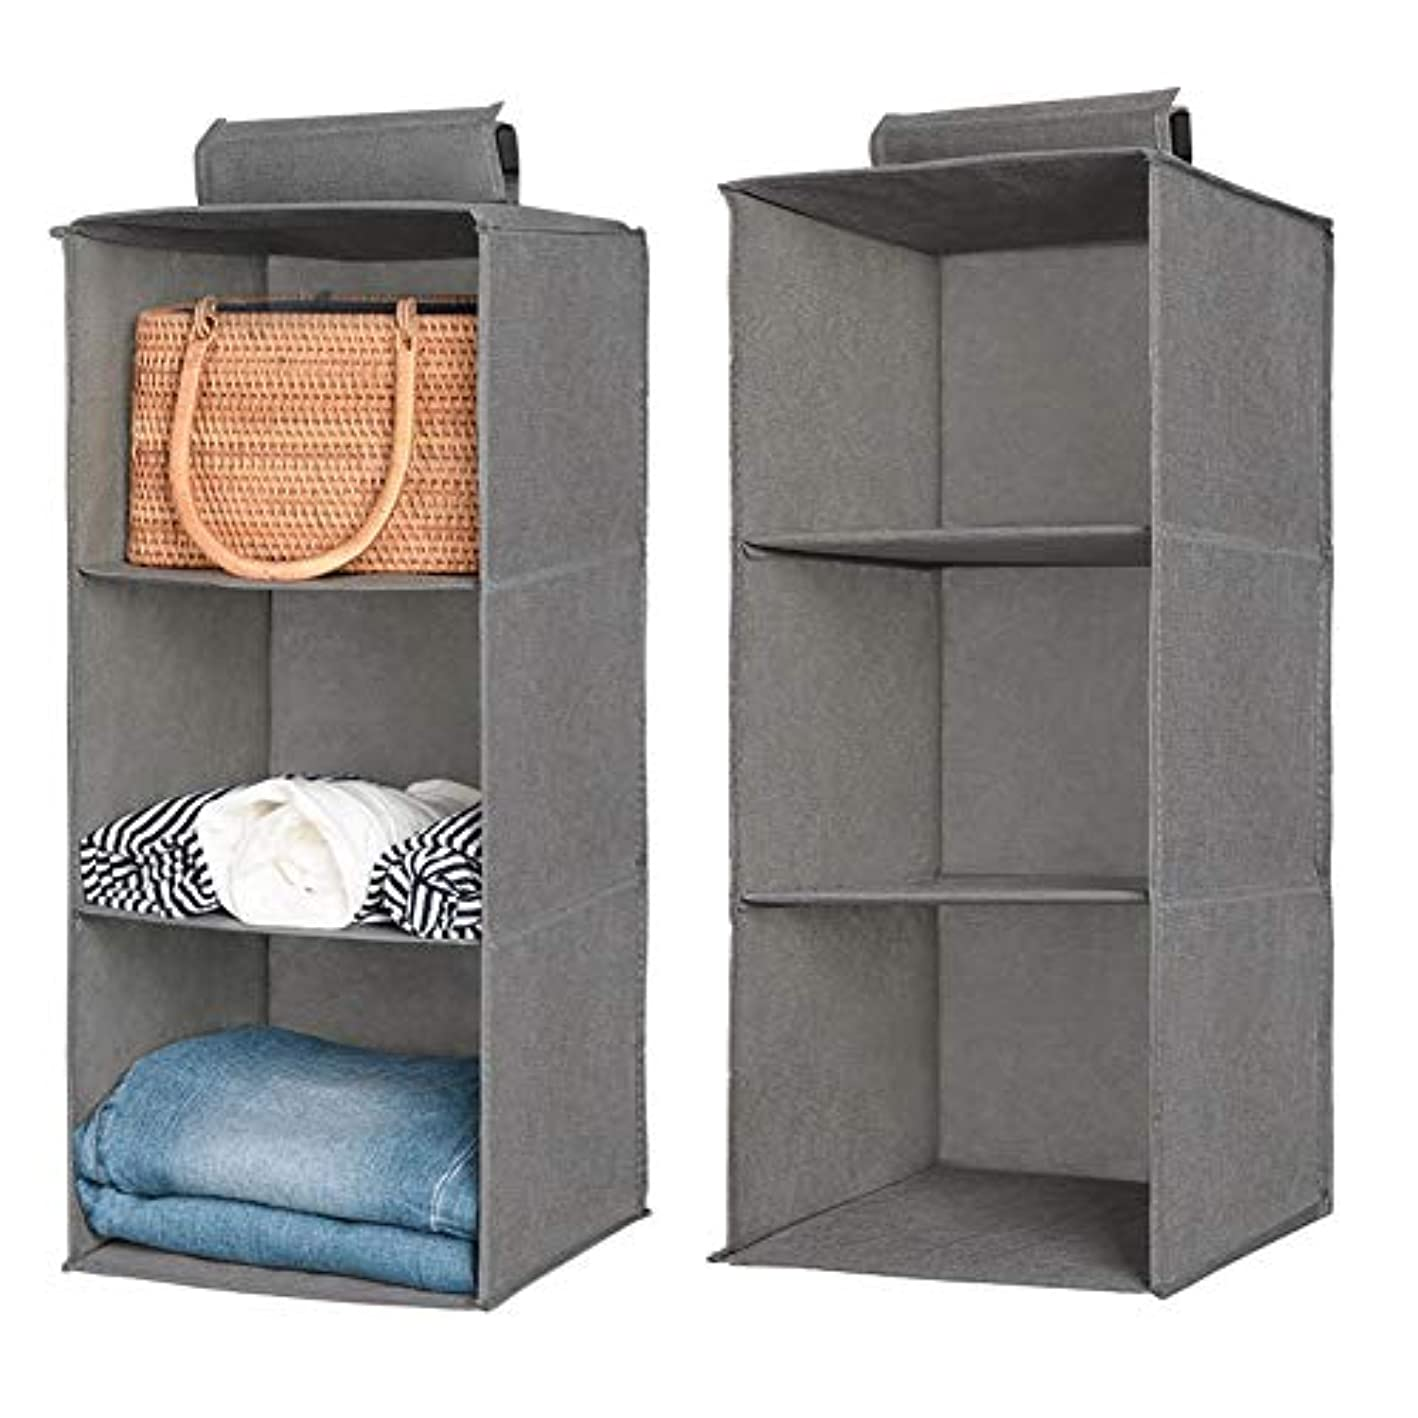 Aoolife Closet Hanging Shelves Organizer,Linen Cloth,Light and Breathable Collapsible Hanging Closet Organizer for Sock, Clothes, Bra, Toys and More (3 Shelf- 2 Pack)